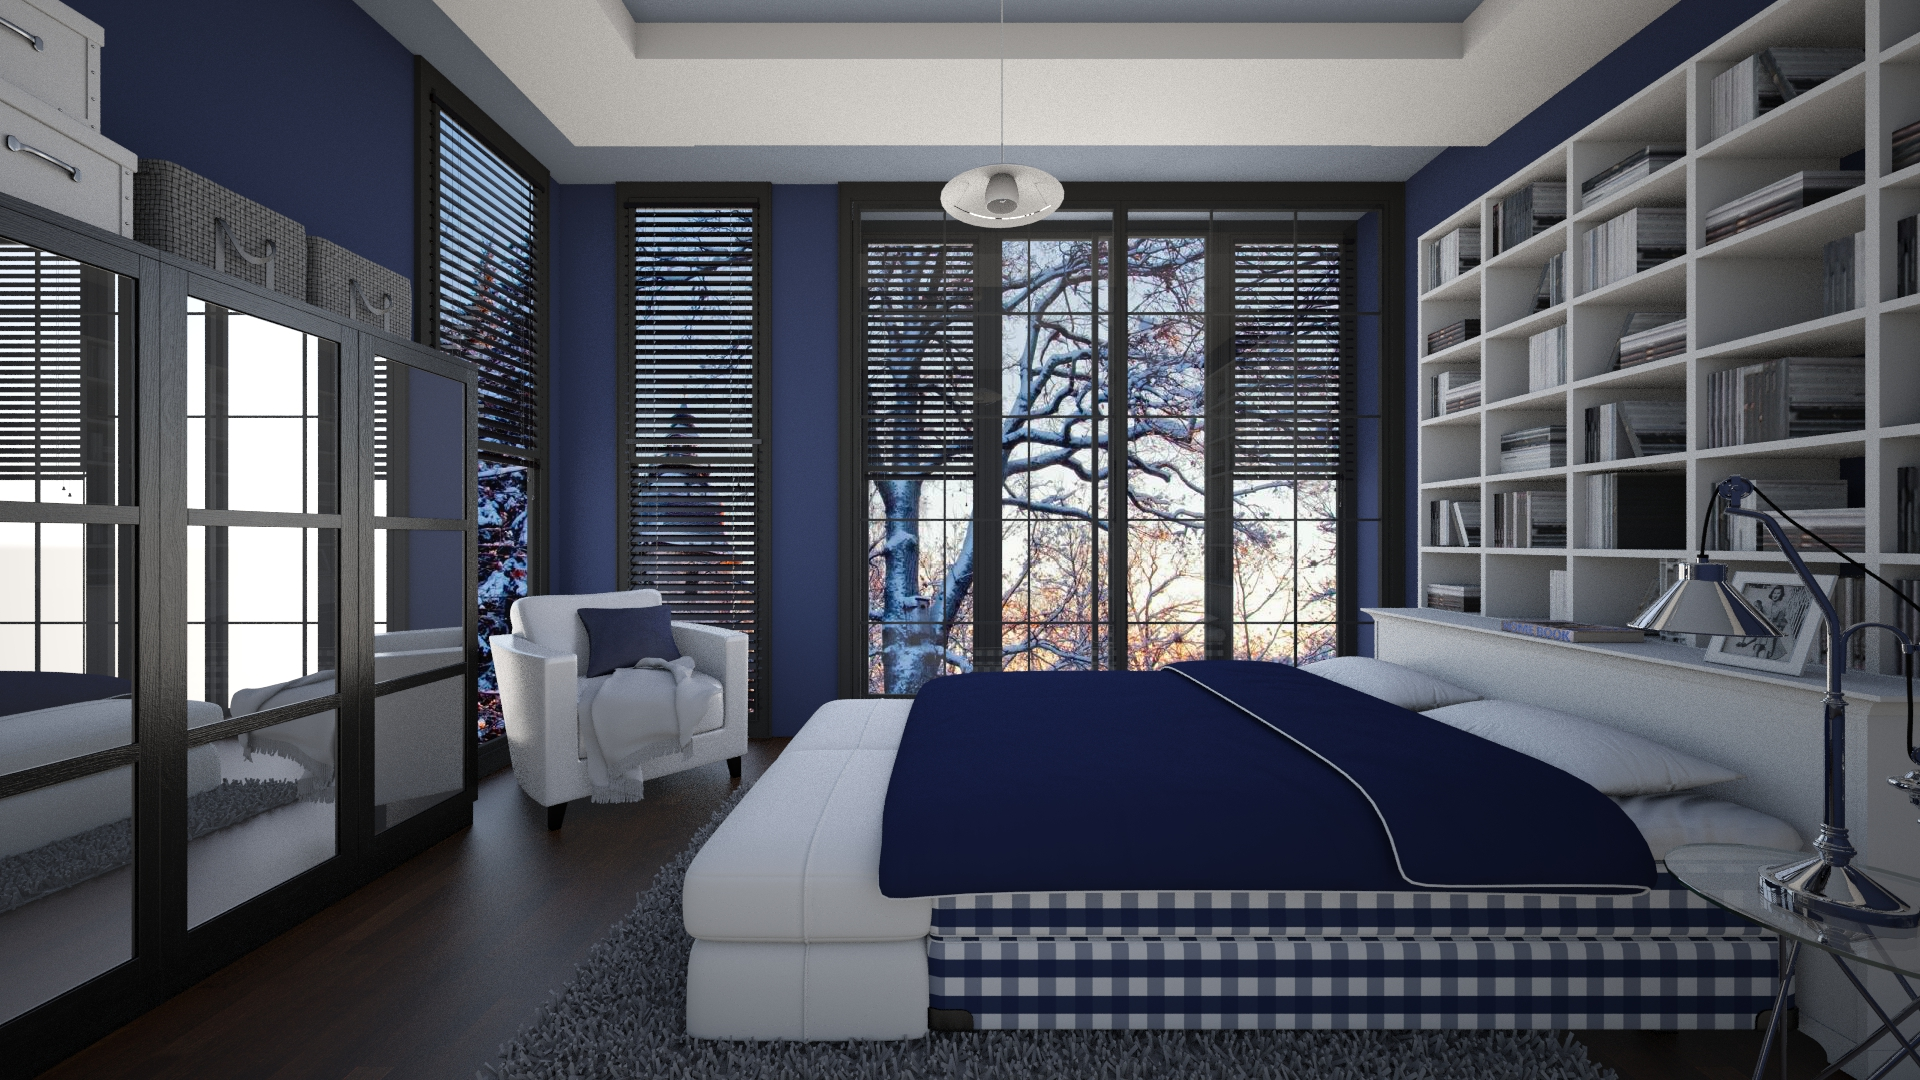 Hastens - Bedroom - by ronron